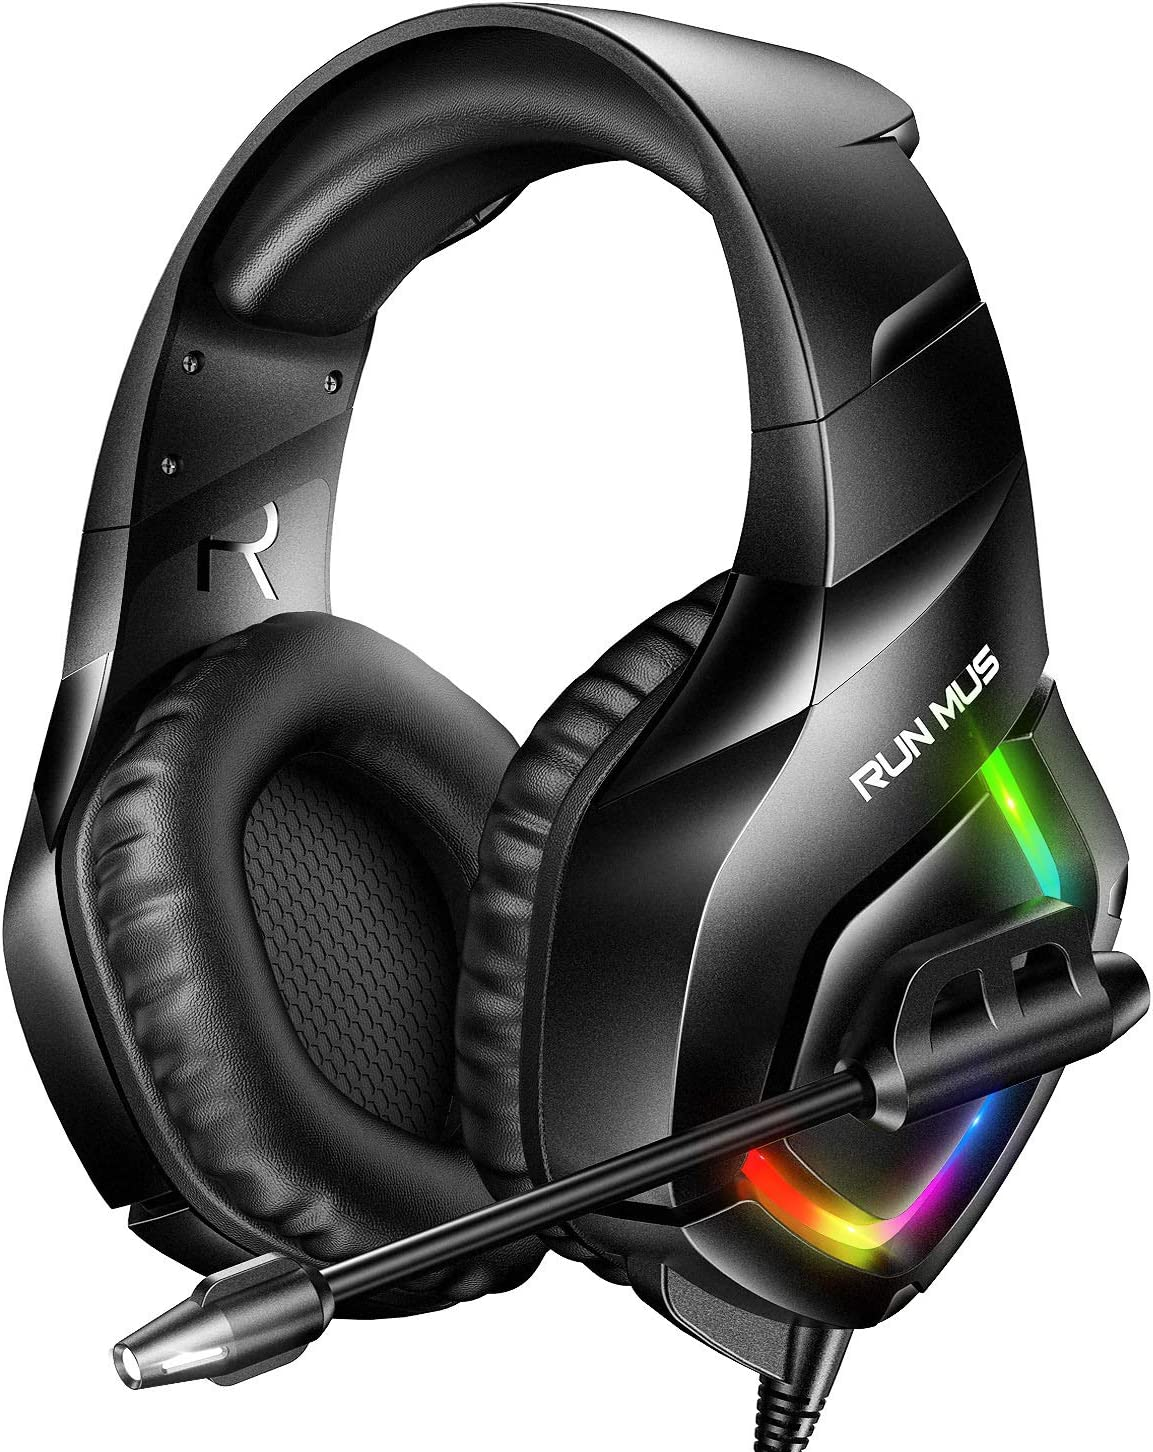 RUNMUS Gaming Headset PS4 Headset with 7.1 Surround Sound, Xbox One Headset with Noise Canceling Mic & RGB Light, Compatible w/ PS4, Xbox One(Adapter Not Included), PC, Laptop NS Game Boy Advance